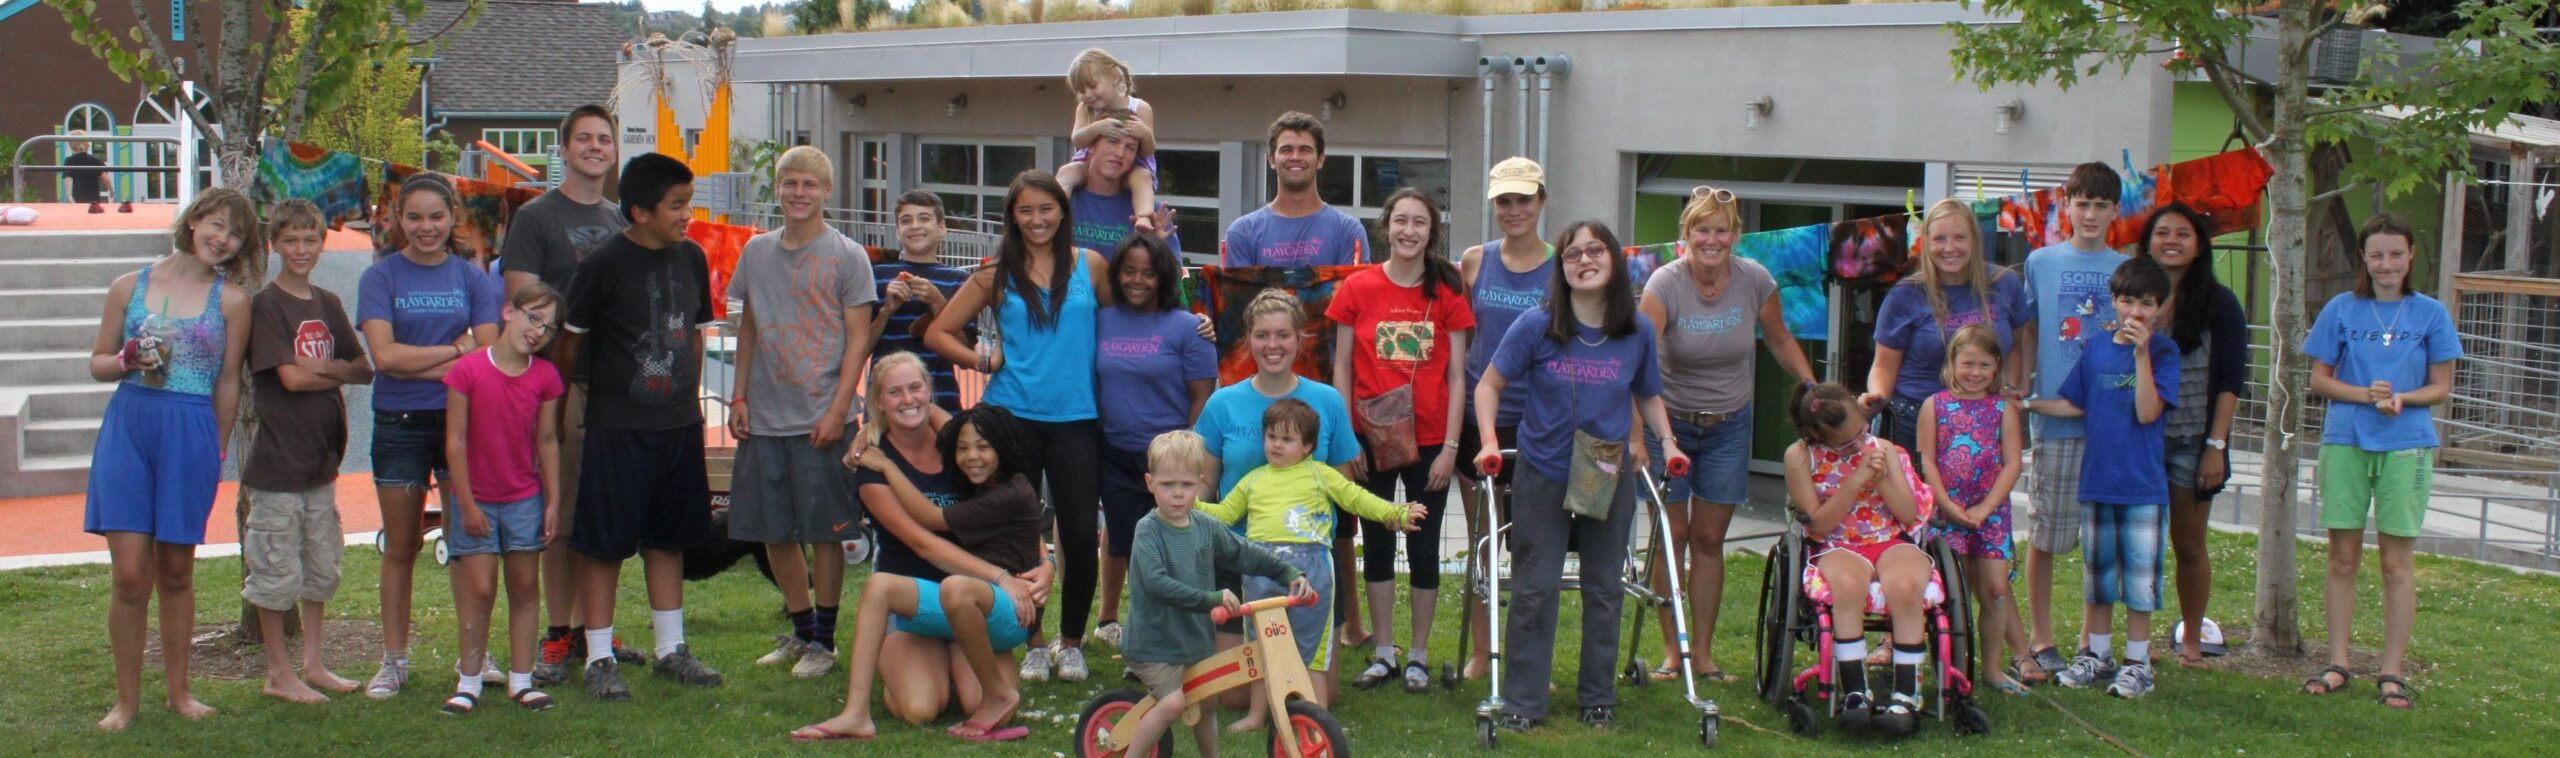 Group of campers and camp counselors at the Seattle Children's PlayGarden's inclusive summer camp